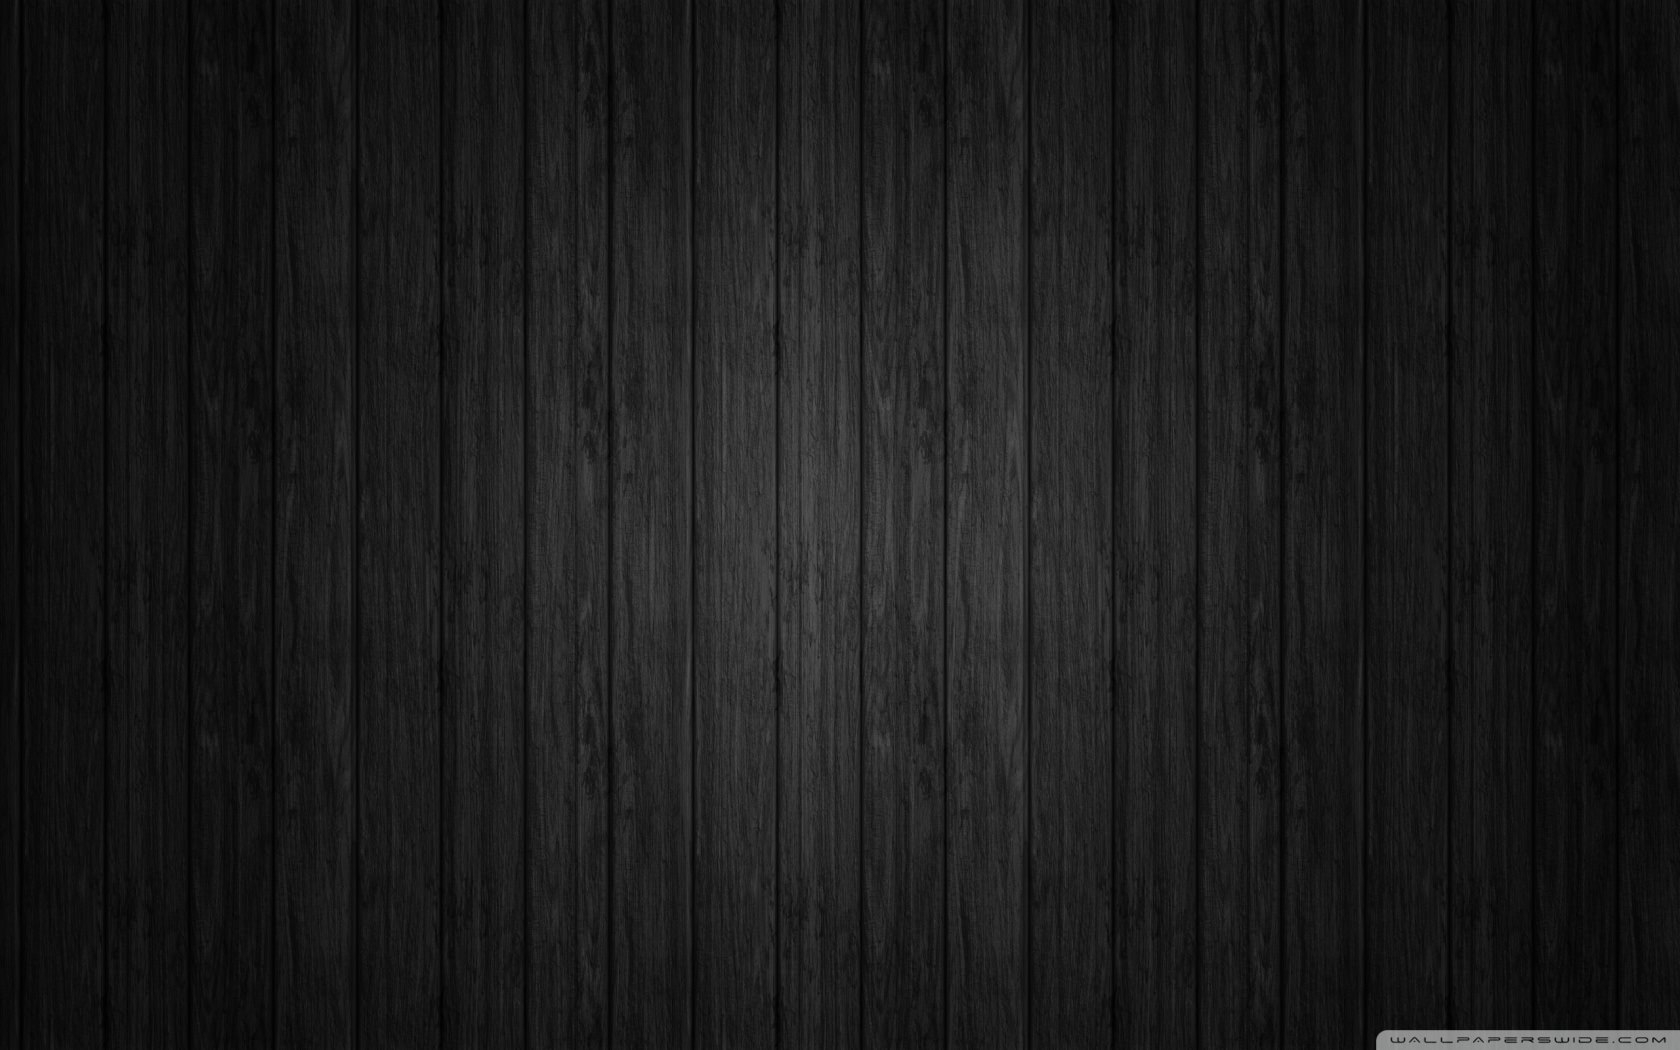 black_background_wood-wallpaper